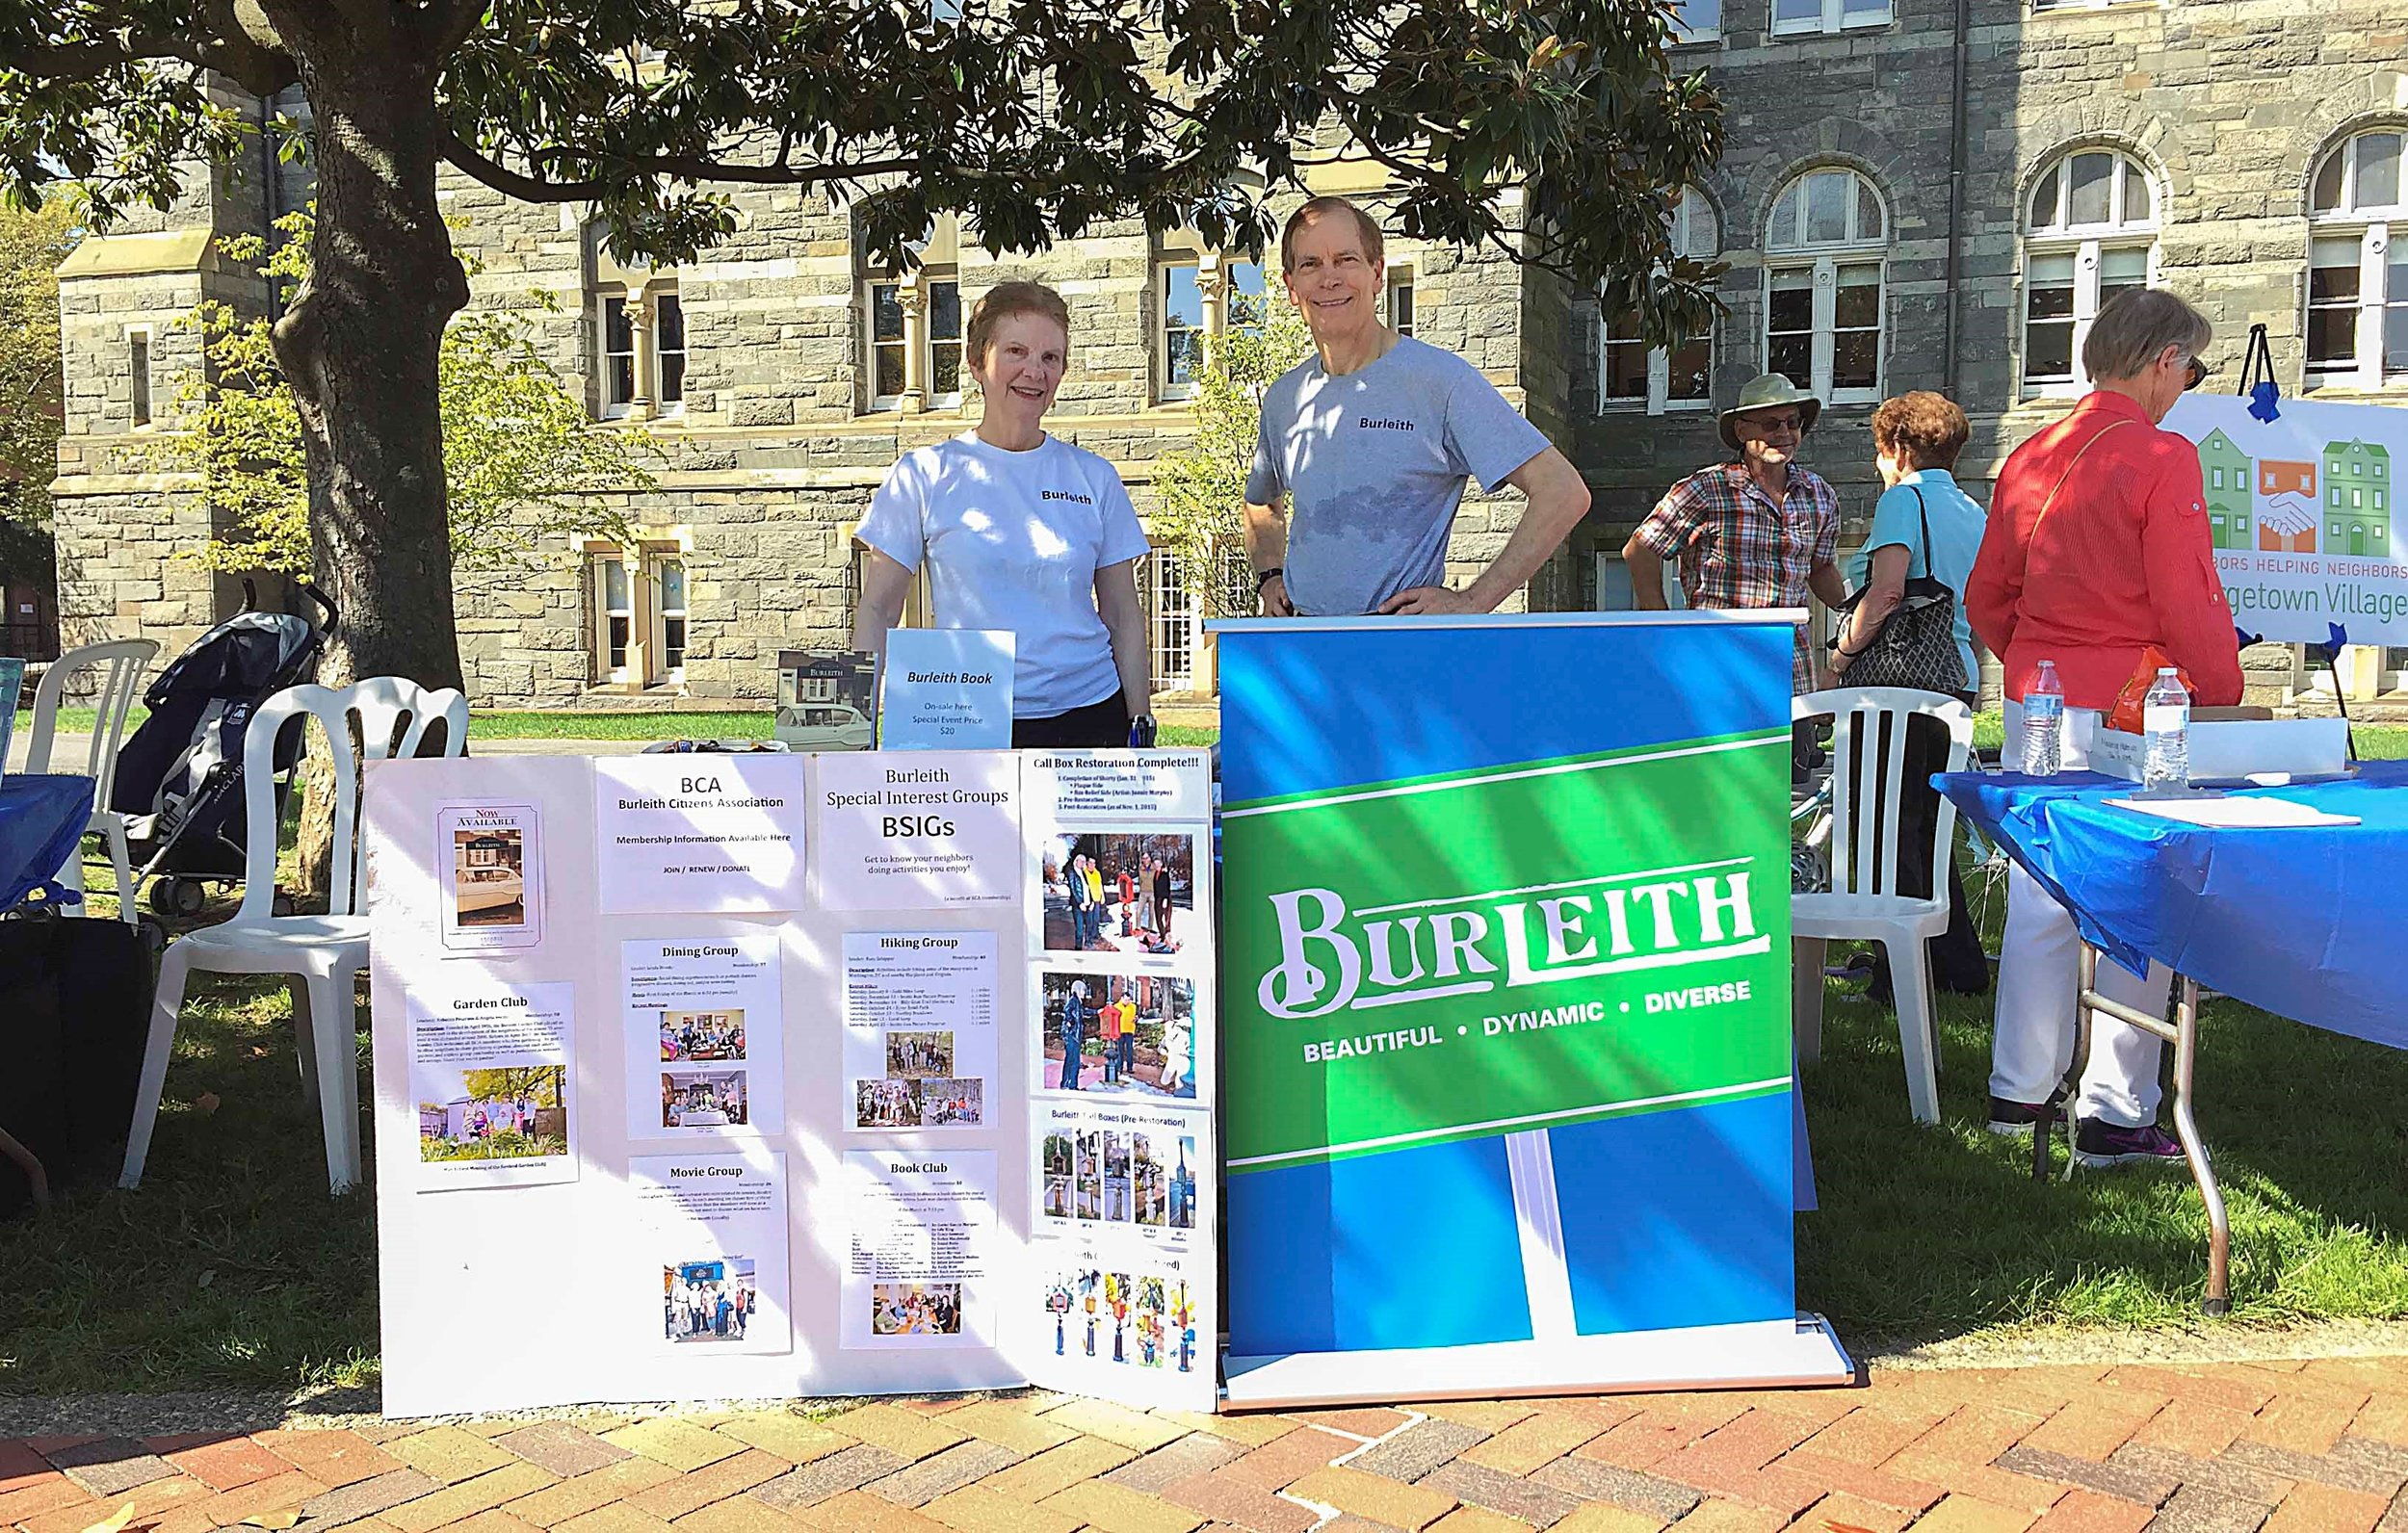 The Burleith Citizens Association will staff a table again this year. Please stop by and learn what's up in Burleith.